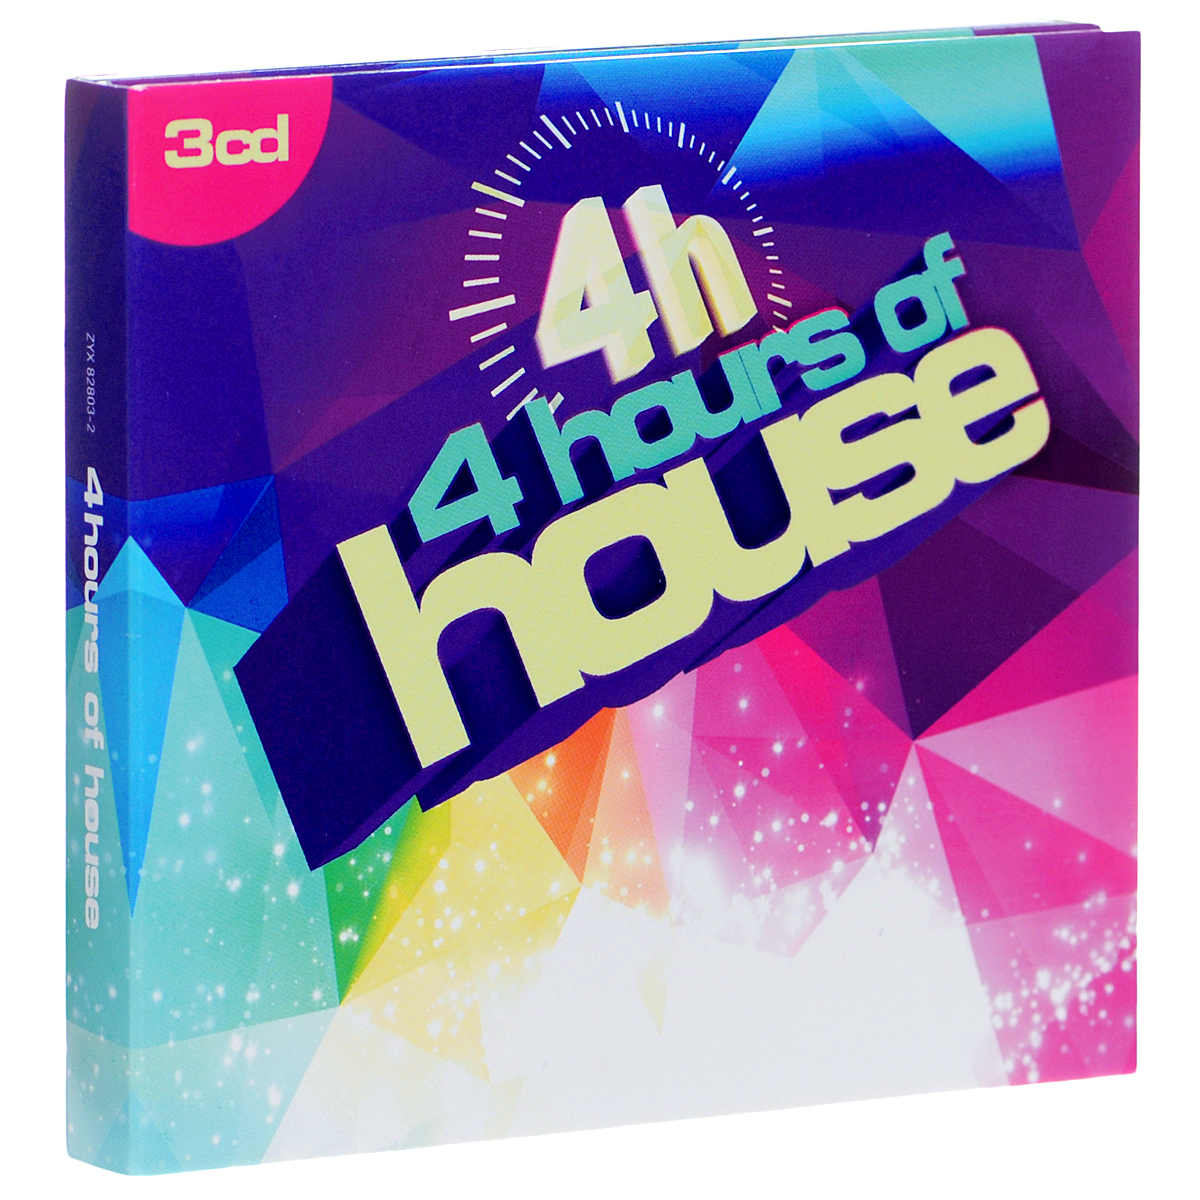 4 Hours Of House (3 CD)